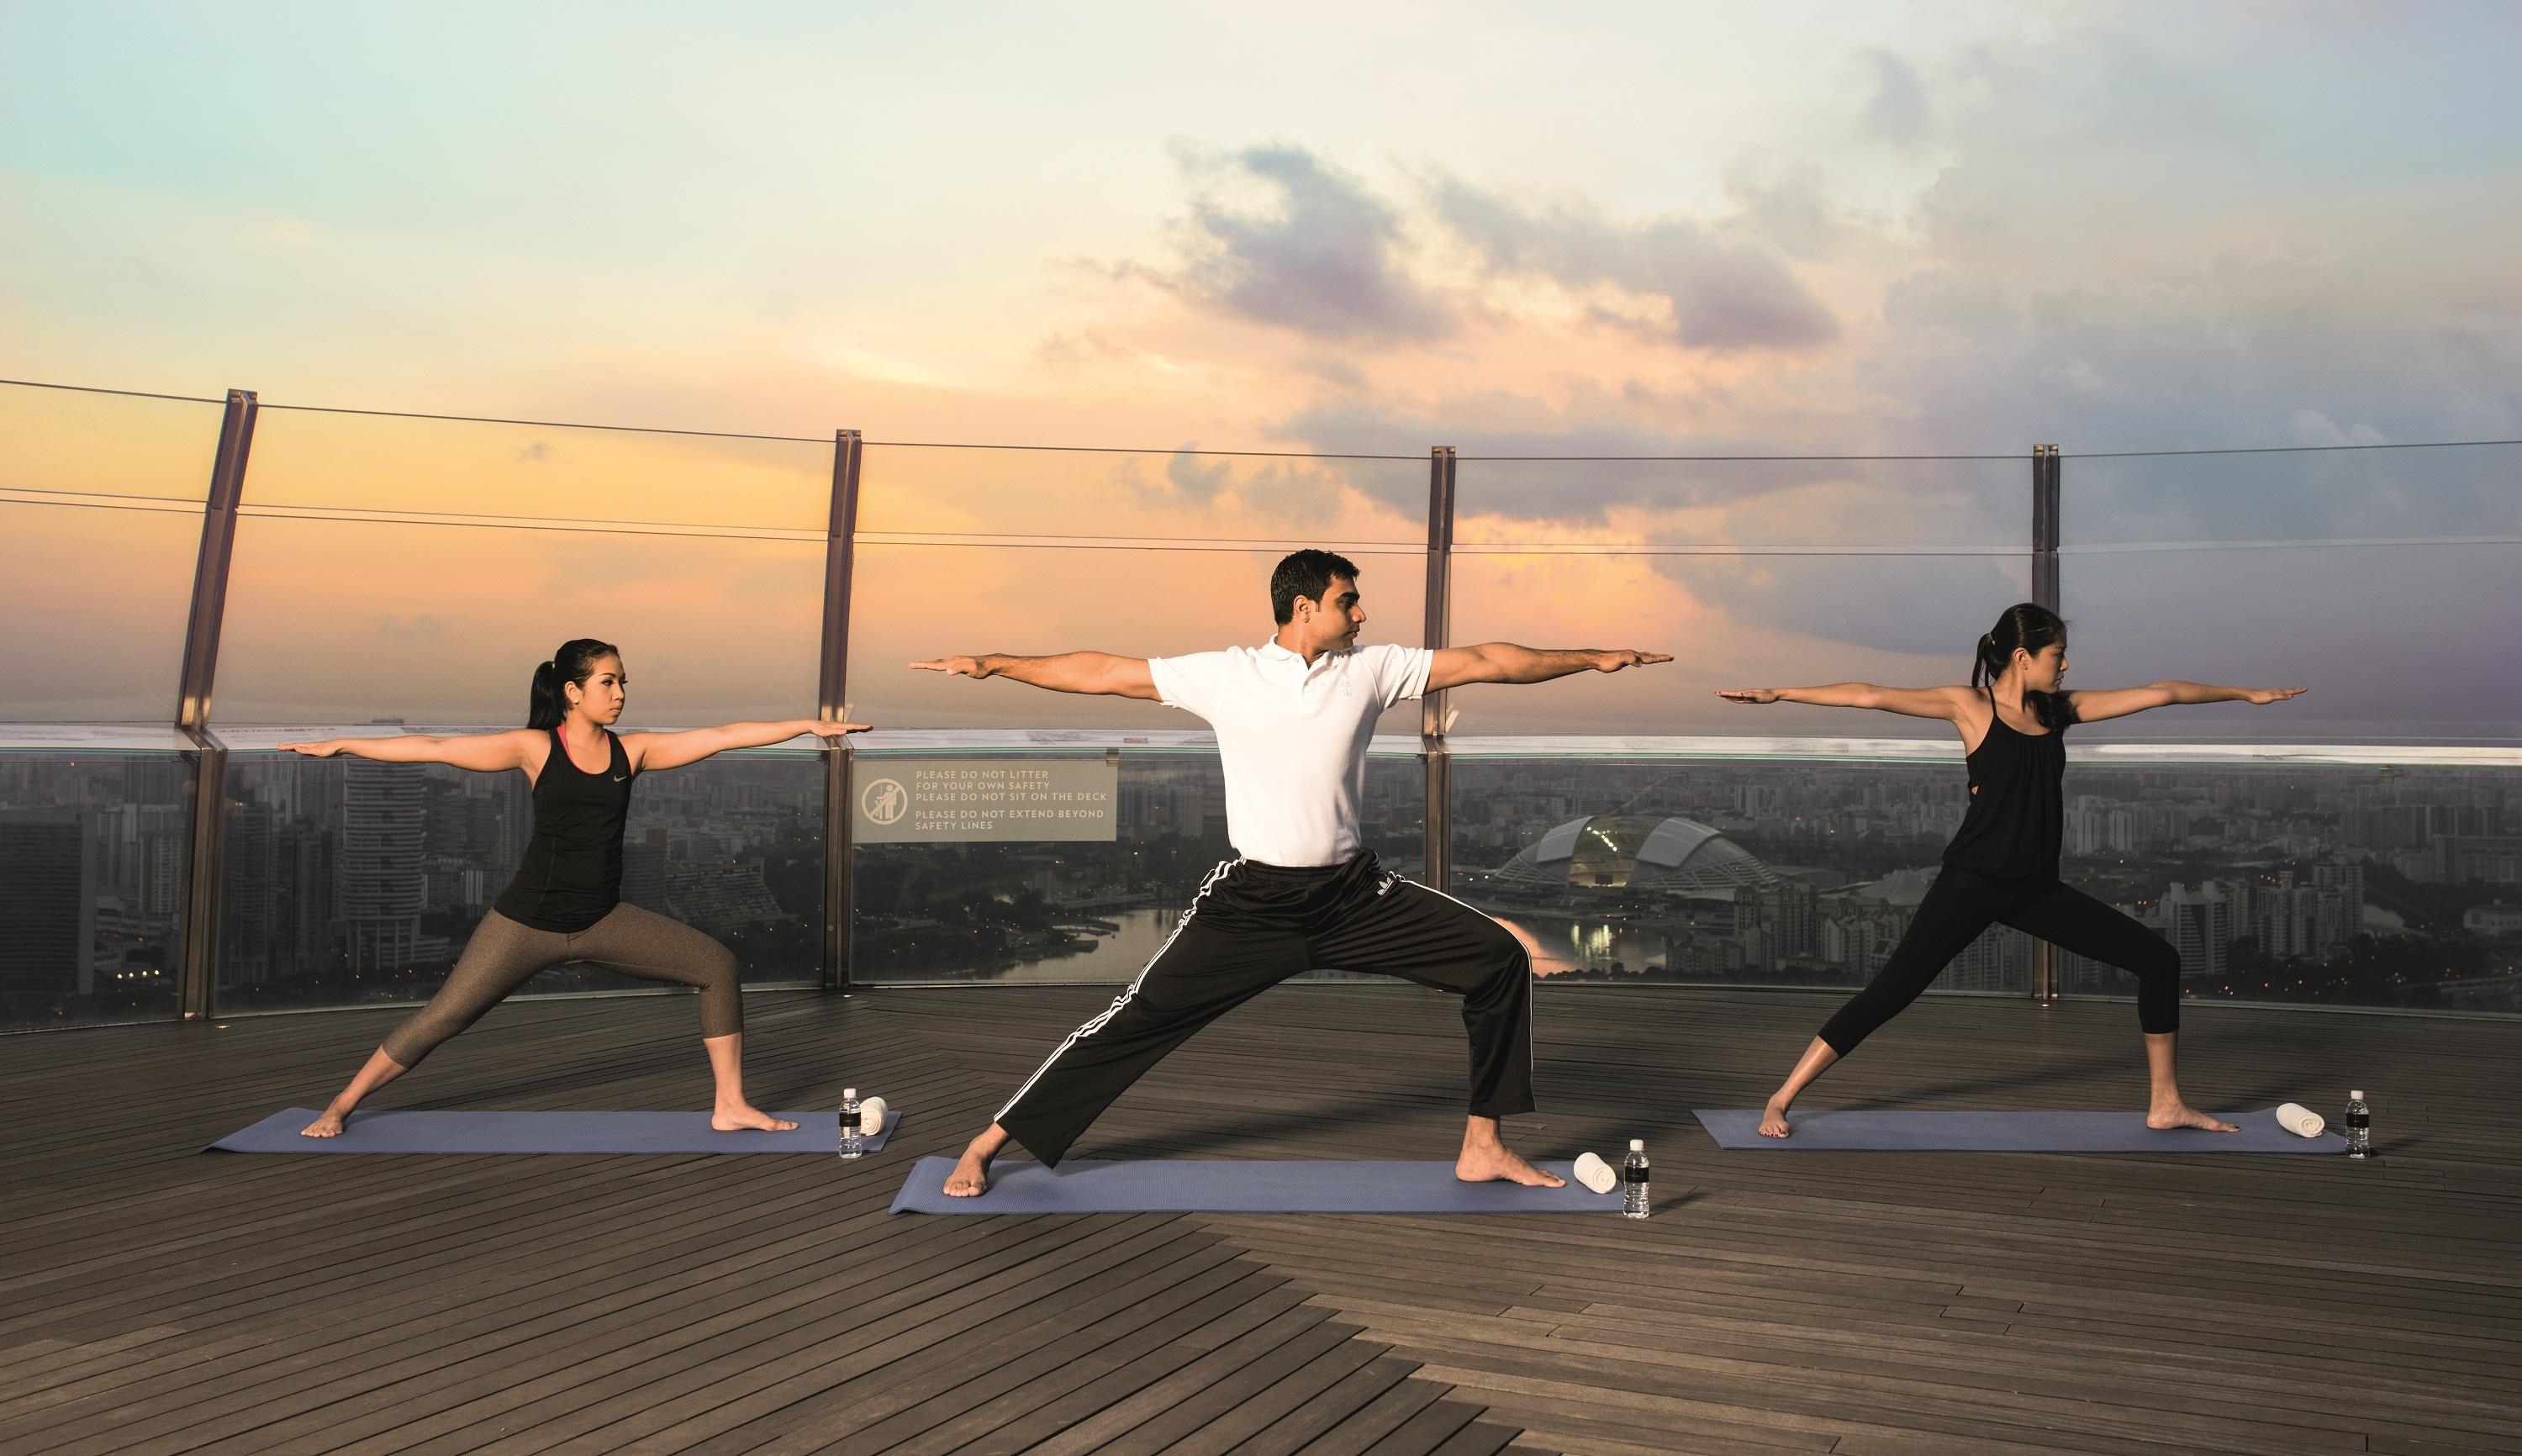 Sunrise Yoga Banyan Tree @ Marina Bay Sands